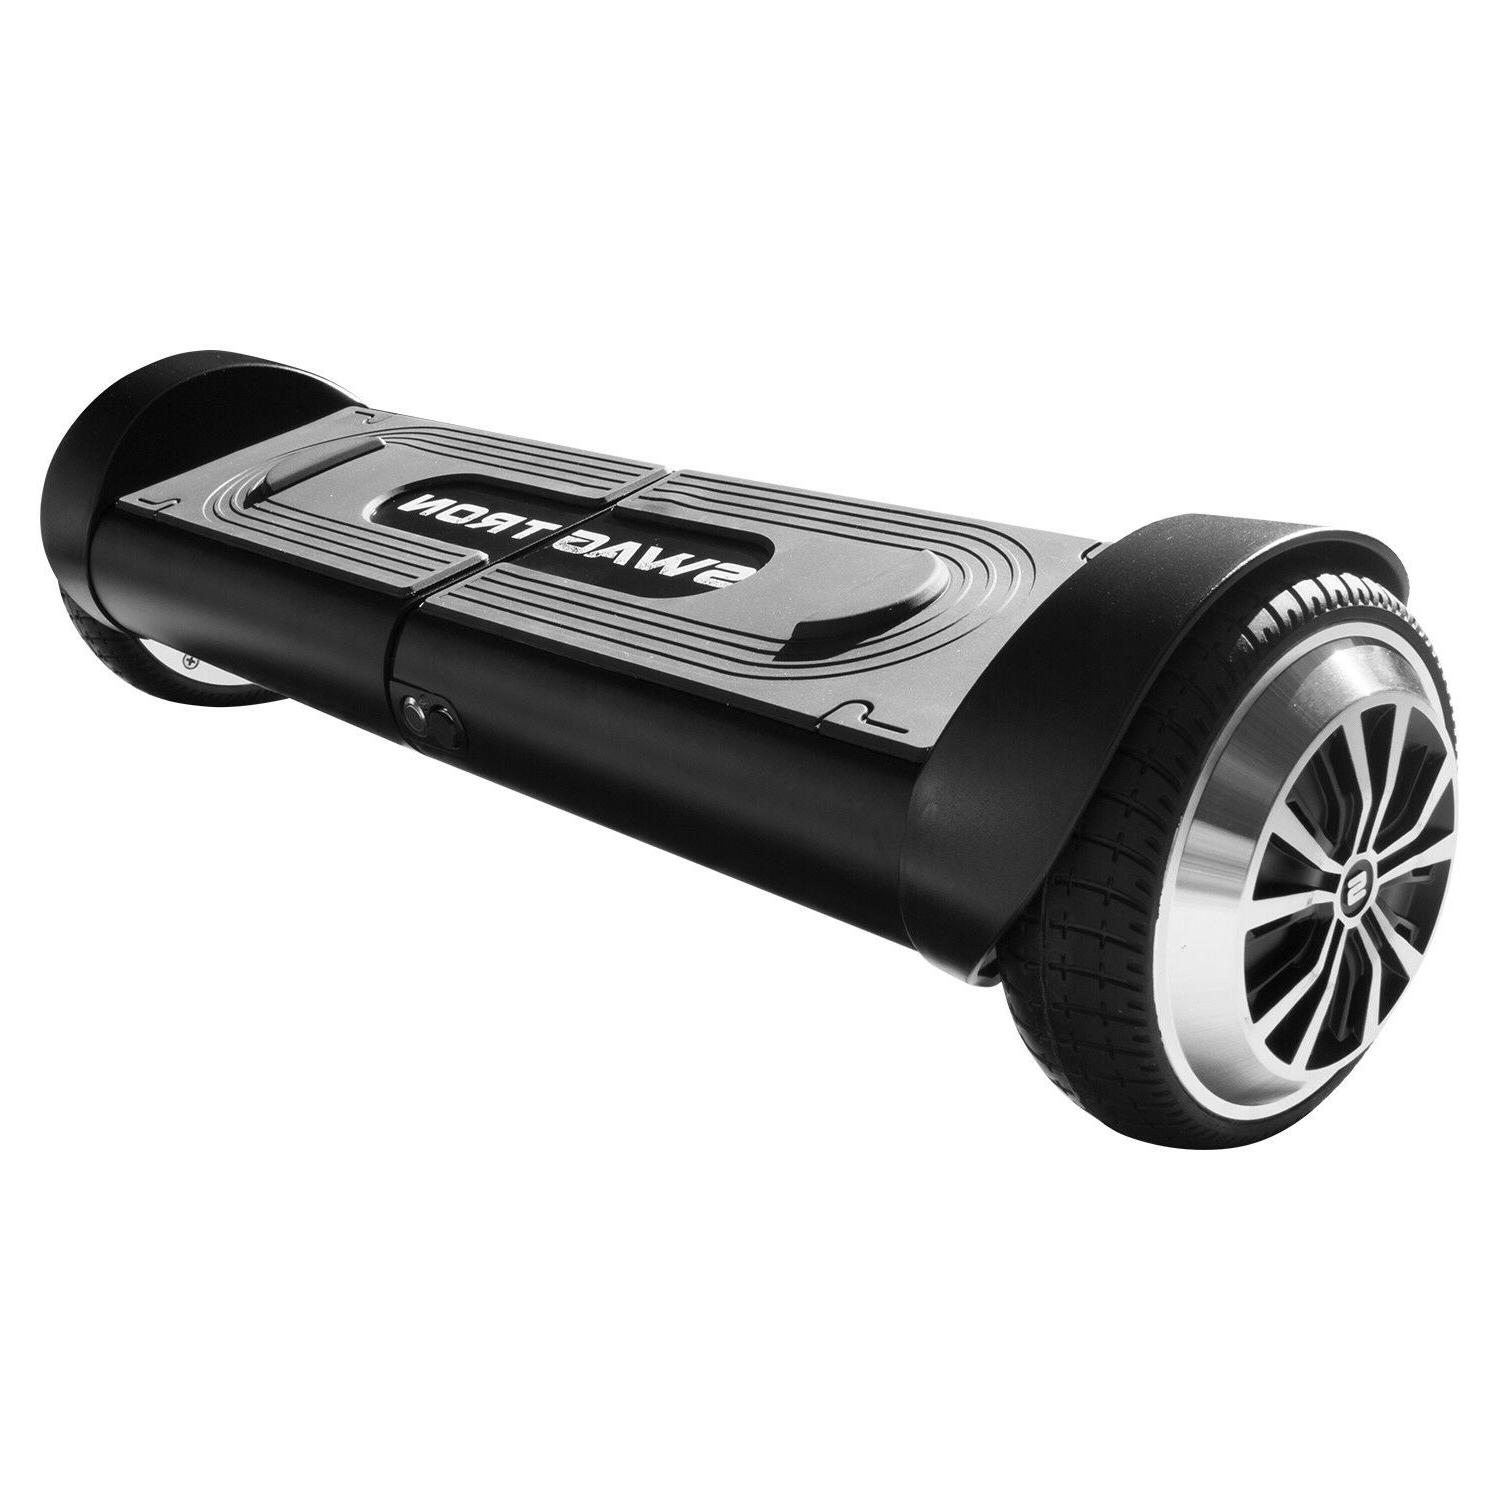 t8 lithium hoverboard startup self